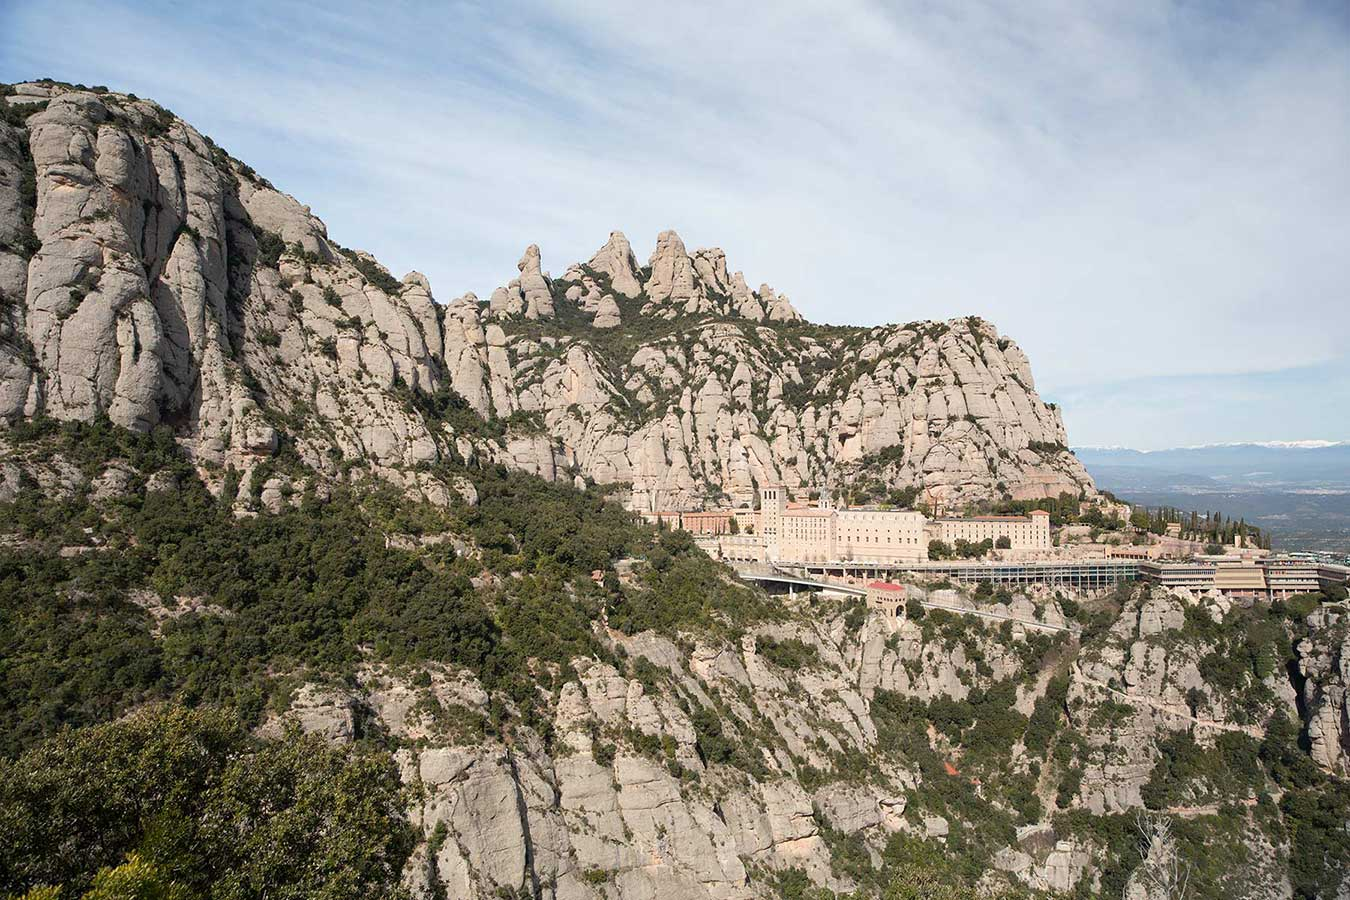 Montserrat, south-west of Barcelona